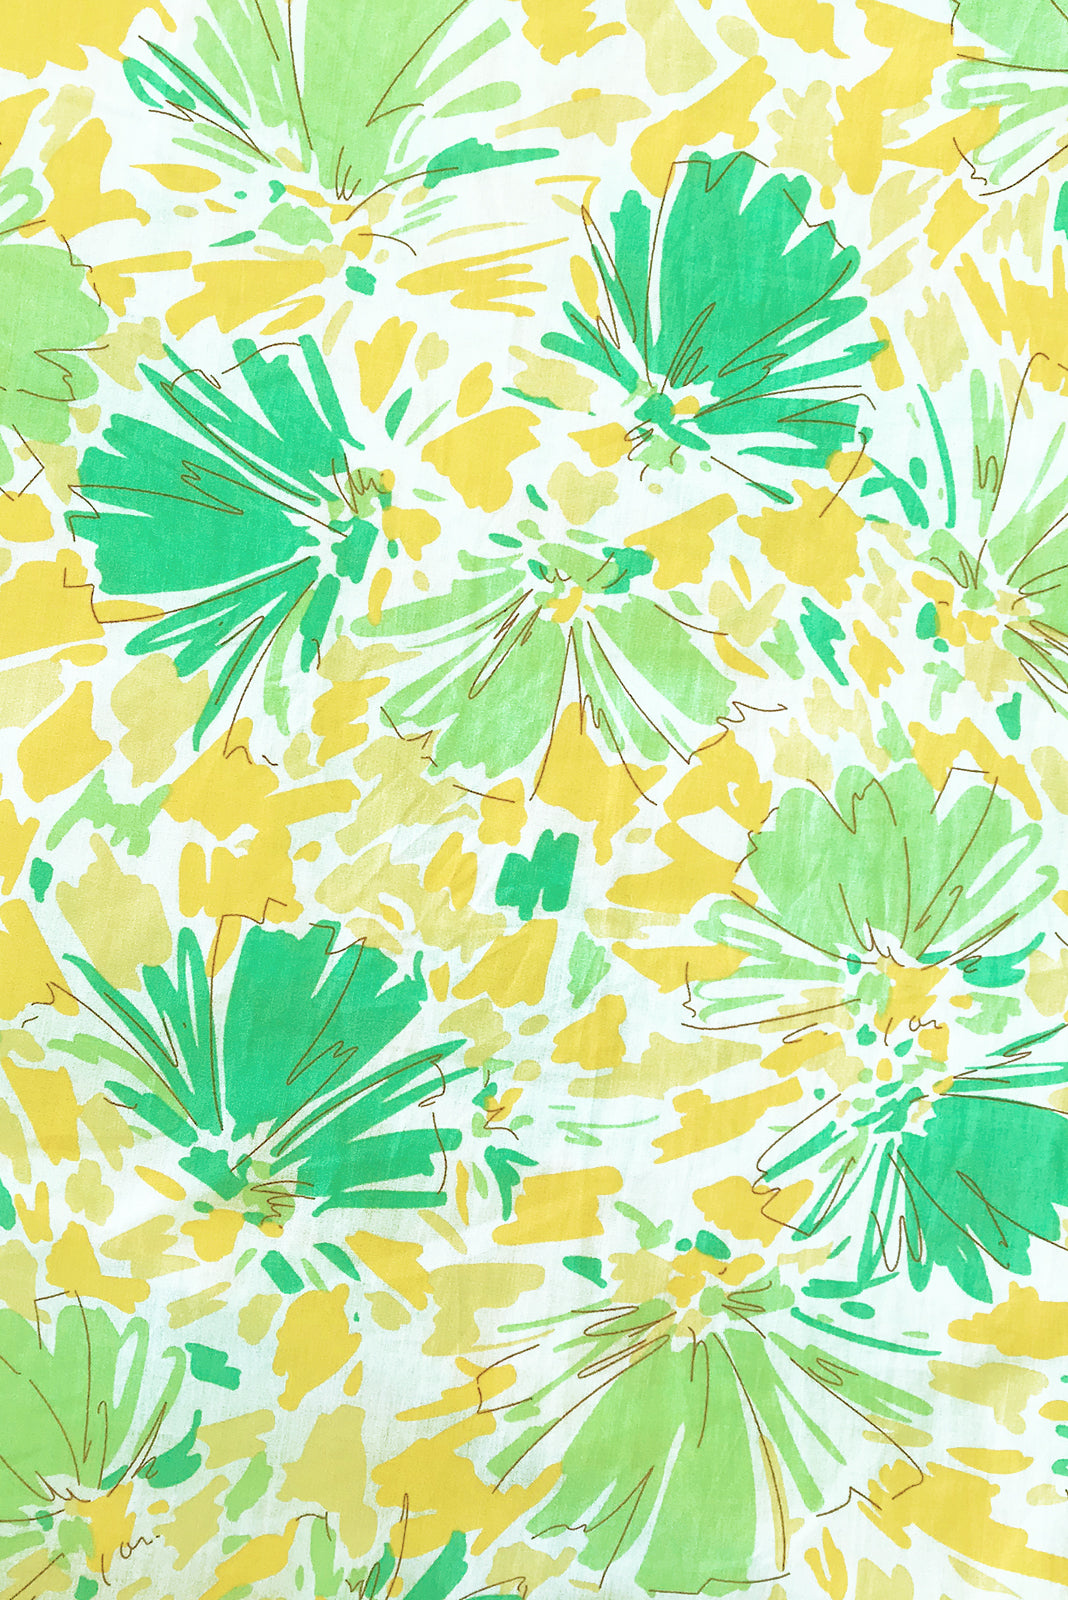 Fabric swatch of Midsummer Lemon and Lime Dress featuring 100% cotton poplin in white base splashed with a bright, yellow and green print.